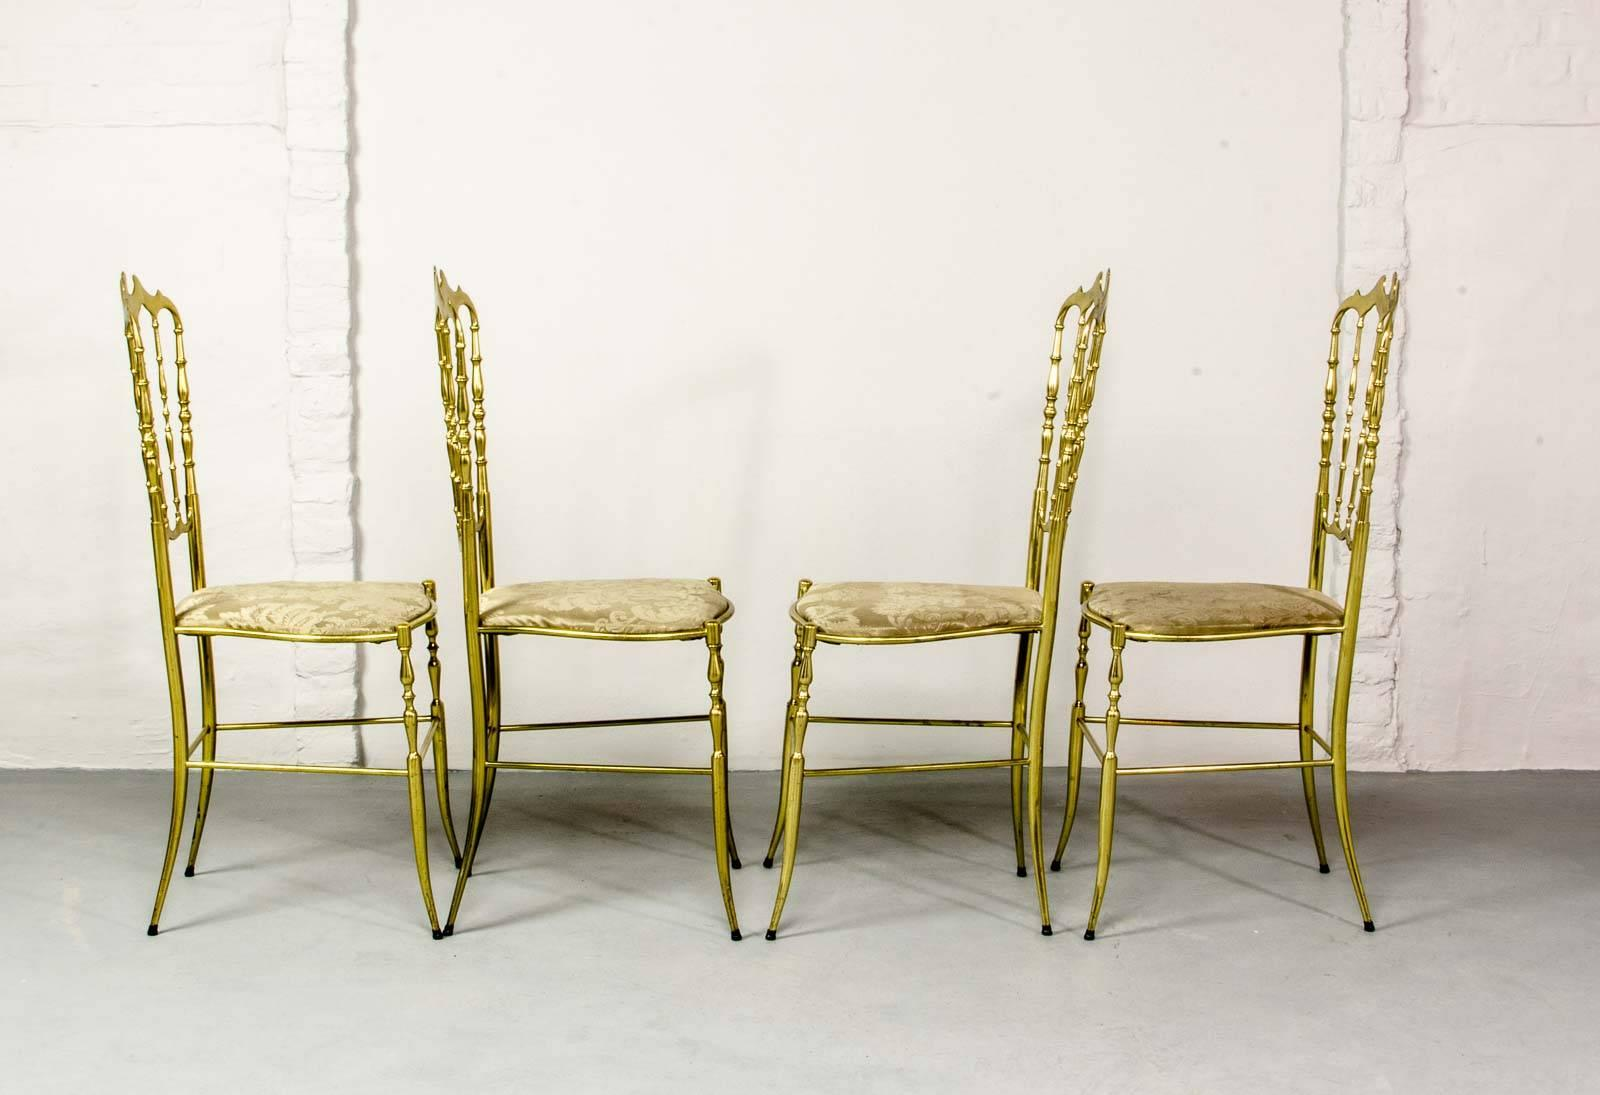 MidCentury Set of Polished Brass Chiavari Chairs by Giuseppe